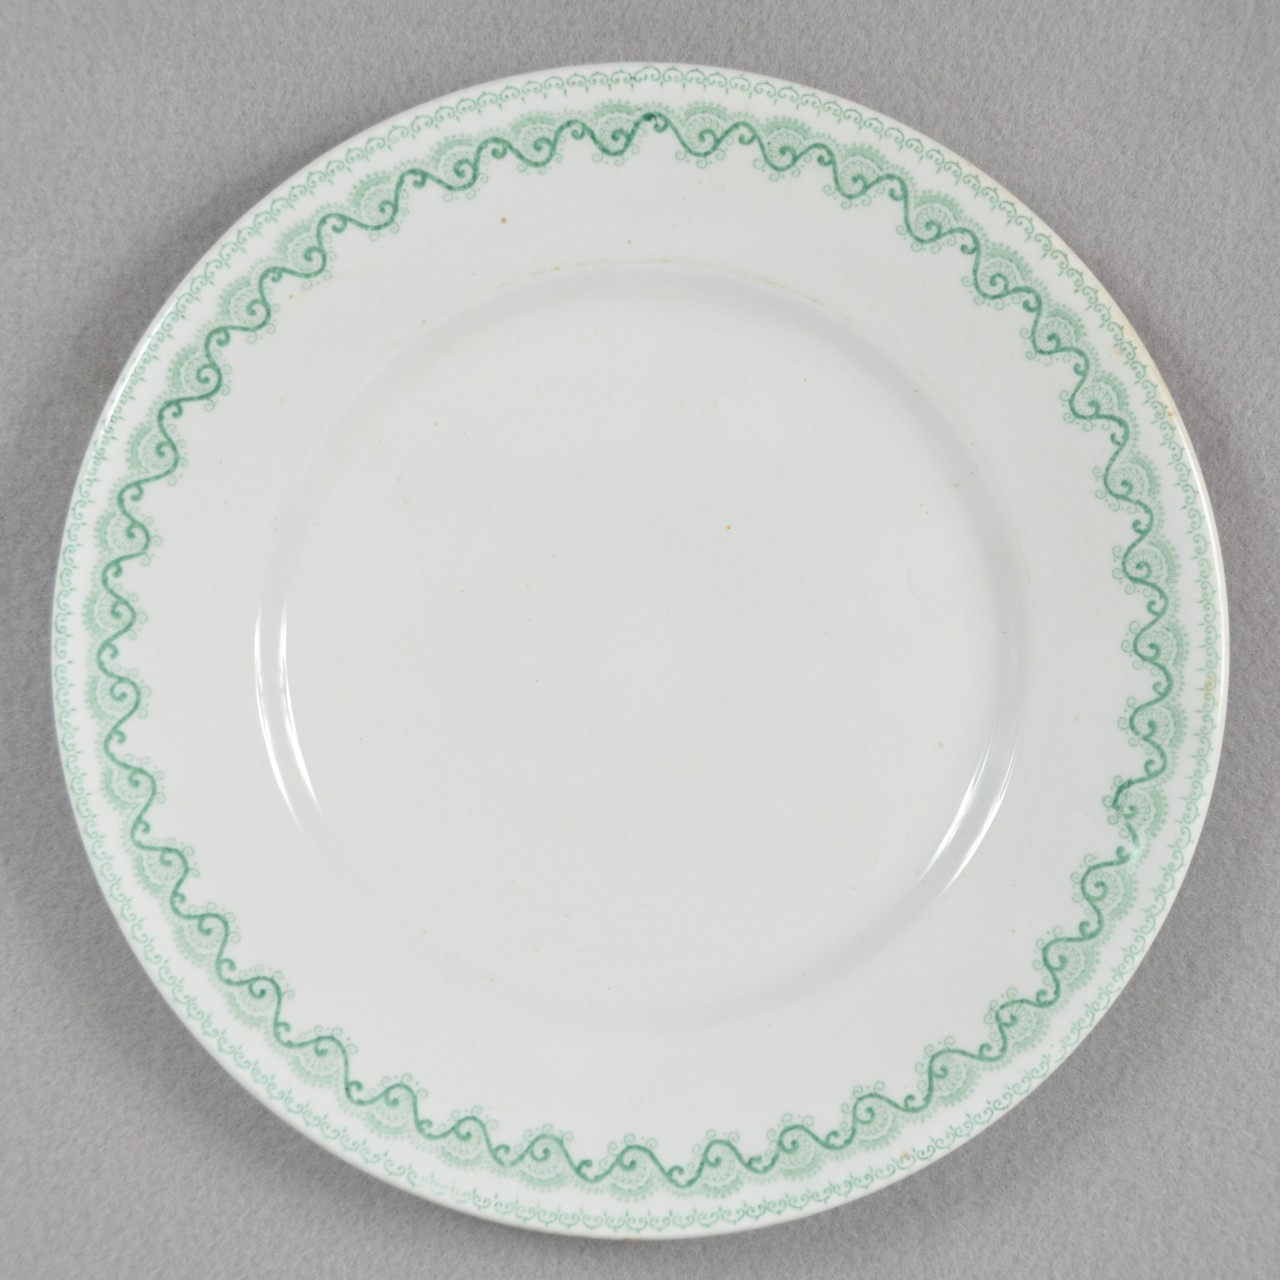 A white glazed stoneware plate recovered from USS San Diego with a continuous green scrolling pattern around the border.